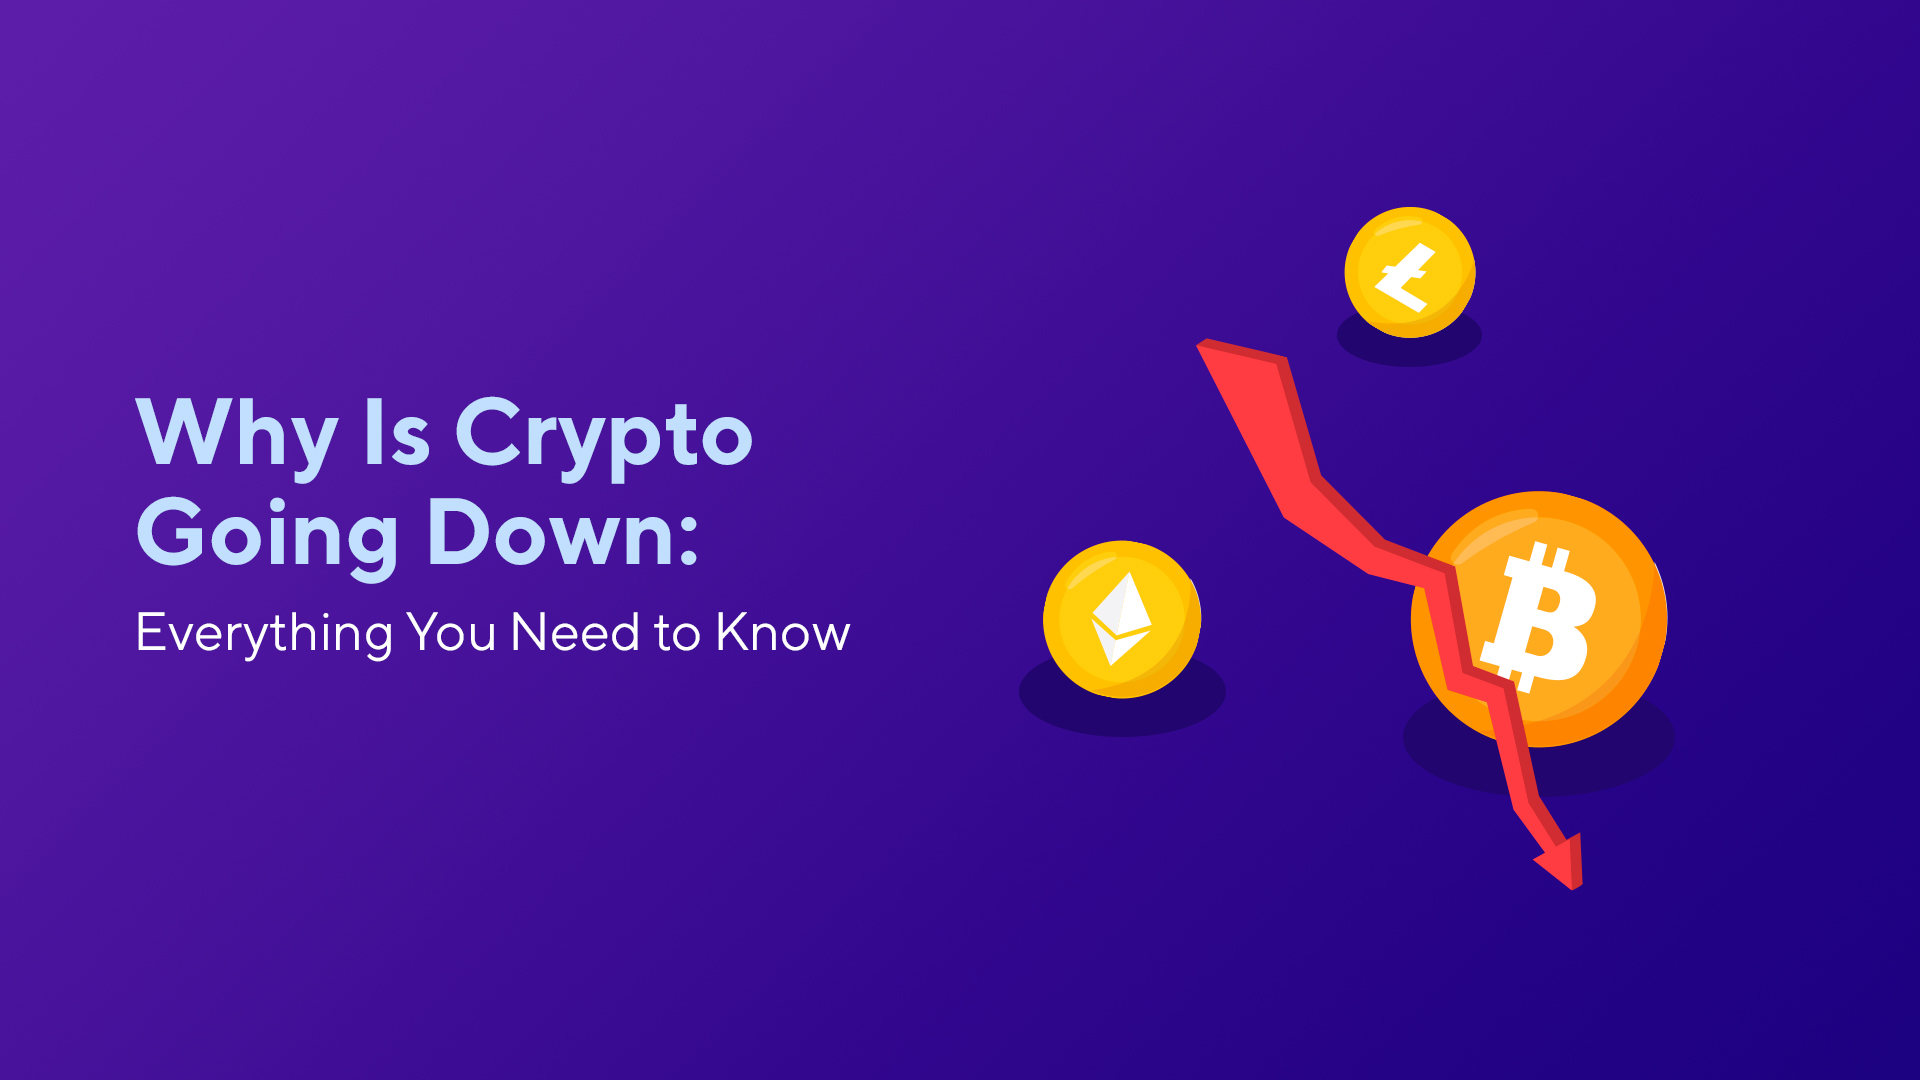 Why Is Crypto Going Down: Everything You Need to Know